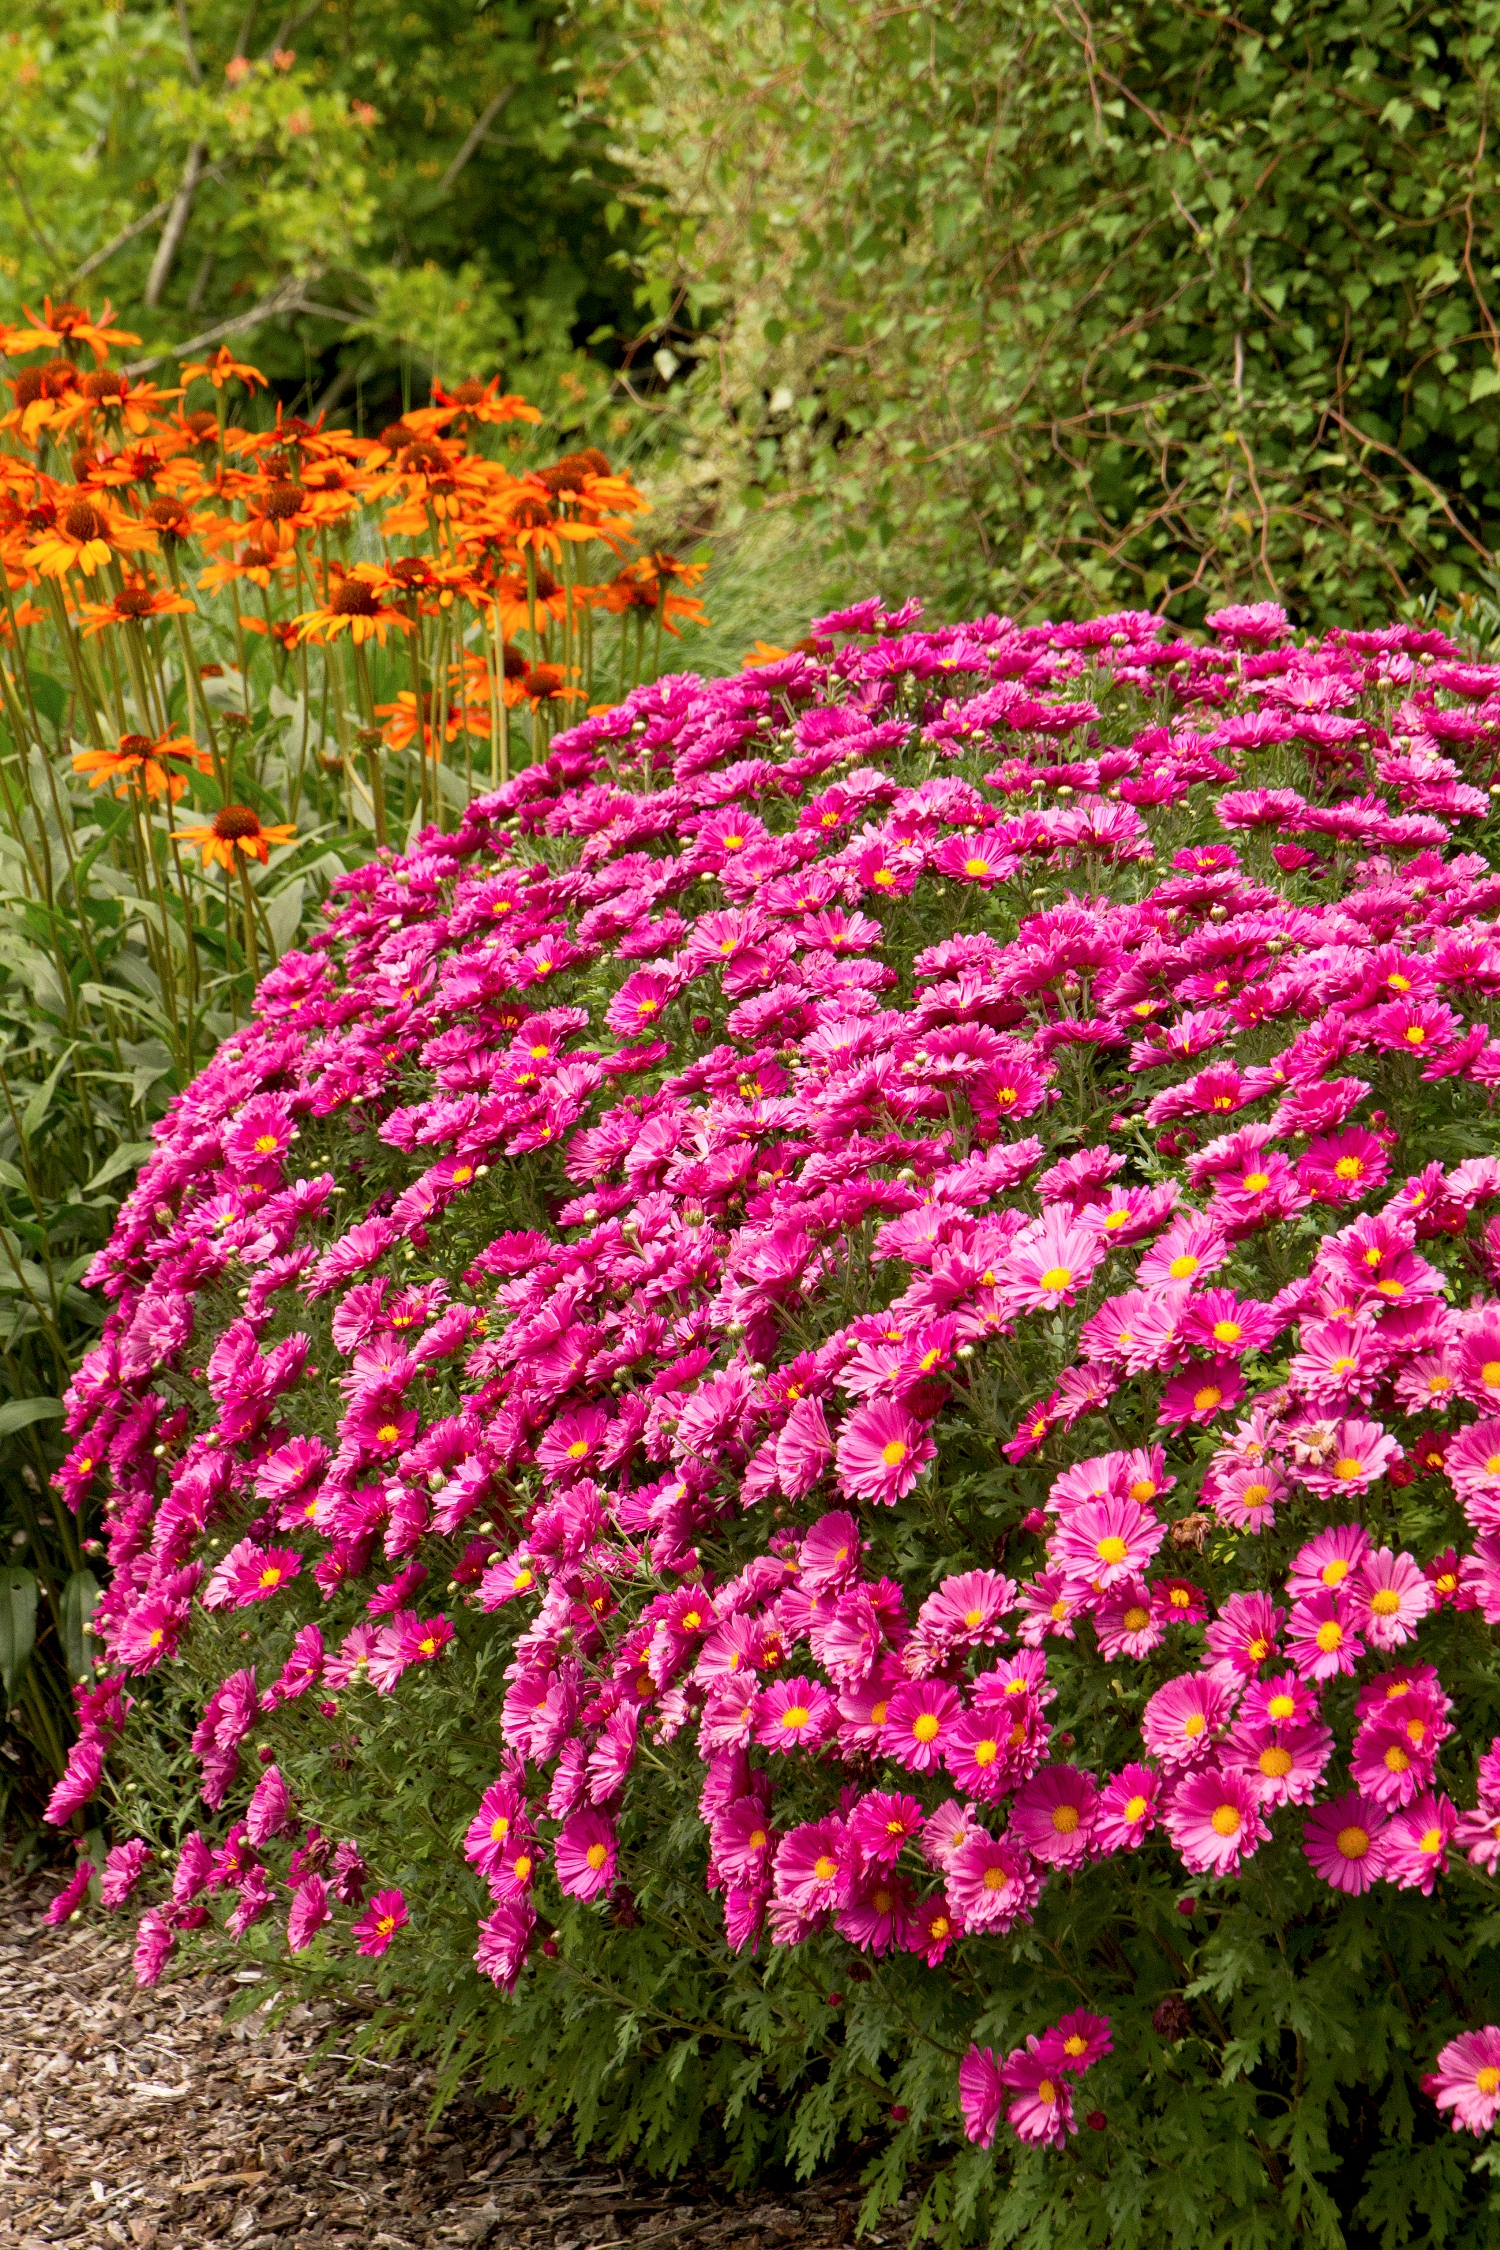 Garden Mum (Chrysanthemum x moratorium).  Typically thought of as an annual, but they make a great perennial for fall color with shades of pink, red, white and yellow. Plant height and width are both 1-3' resulting typically in a round shape. They produce a wonderful burst of color for 2-4 weeks in late September and October. Mums will tolerate light shade but prefer full sun. To survive the winter as a perennial they need moisture and good drainage. Therefore, add an ample amount of compost when planting in our clay soils. Dormant foliage can be removed anytime during the winter or in the spring when new growth emerges. Mums will bloom a little in the spring or early summer. Once the early blooms fade, keep the plant sheared to the shape and height you prefer. Stop shearing after the first of July. When you shear a mum during the last half of the summer, you are removing the flower buds for the fall.